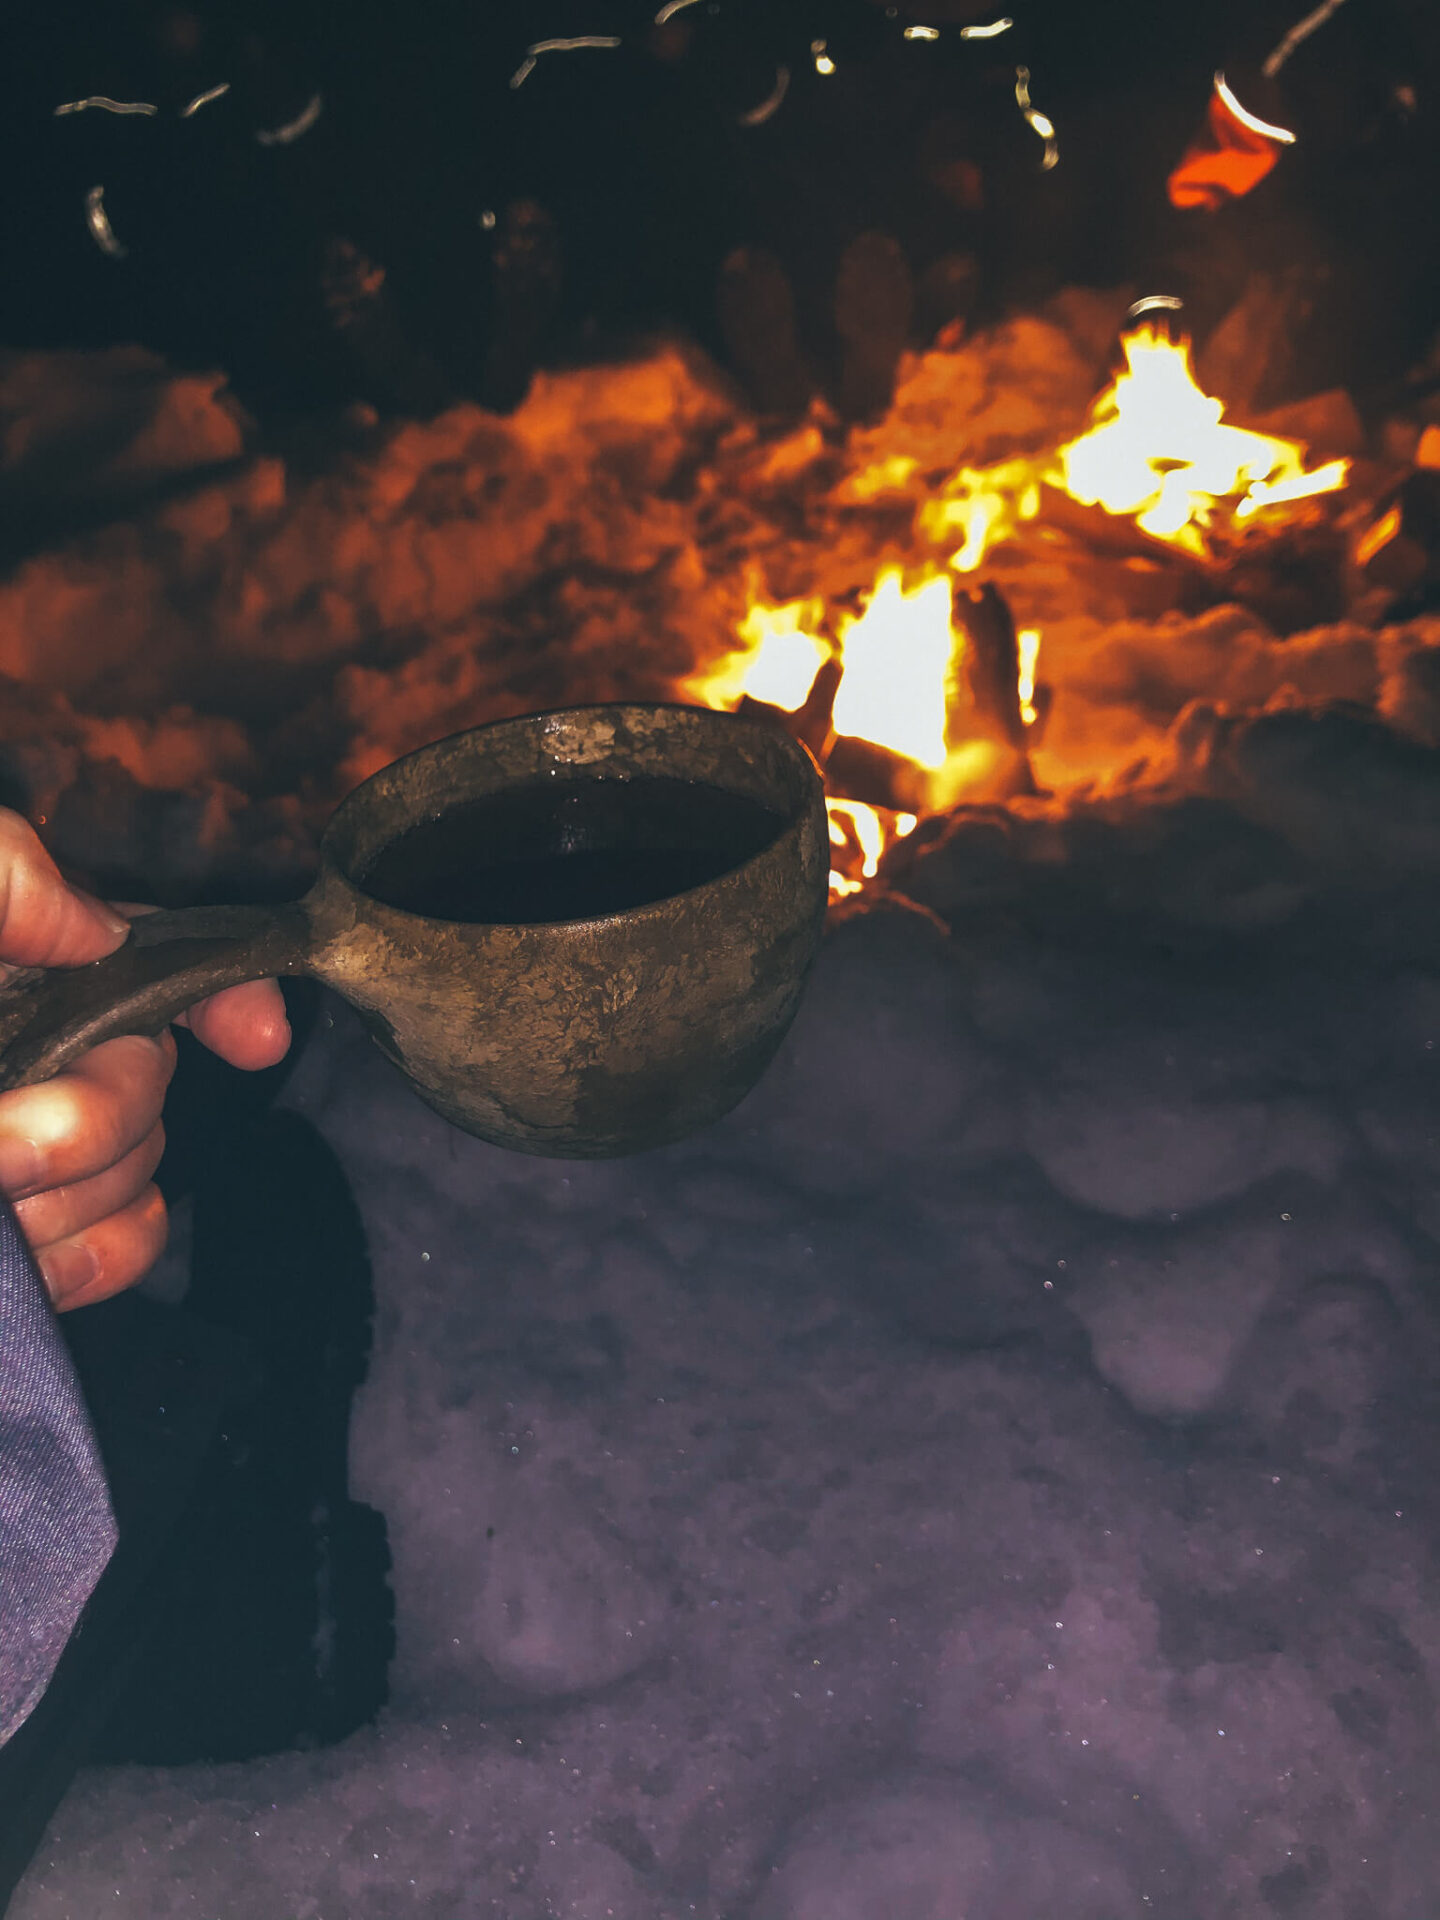 A traditional finnish cup in front of a fire on the snow